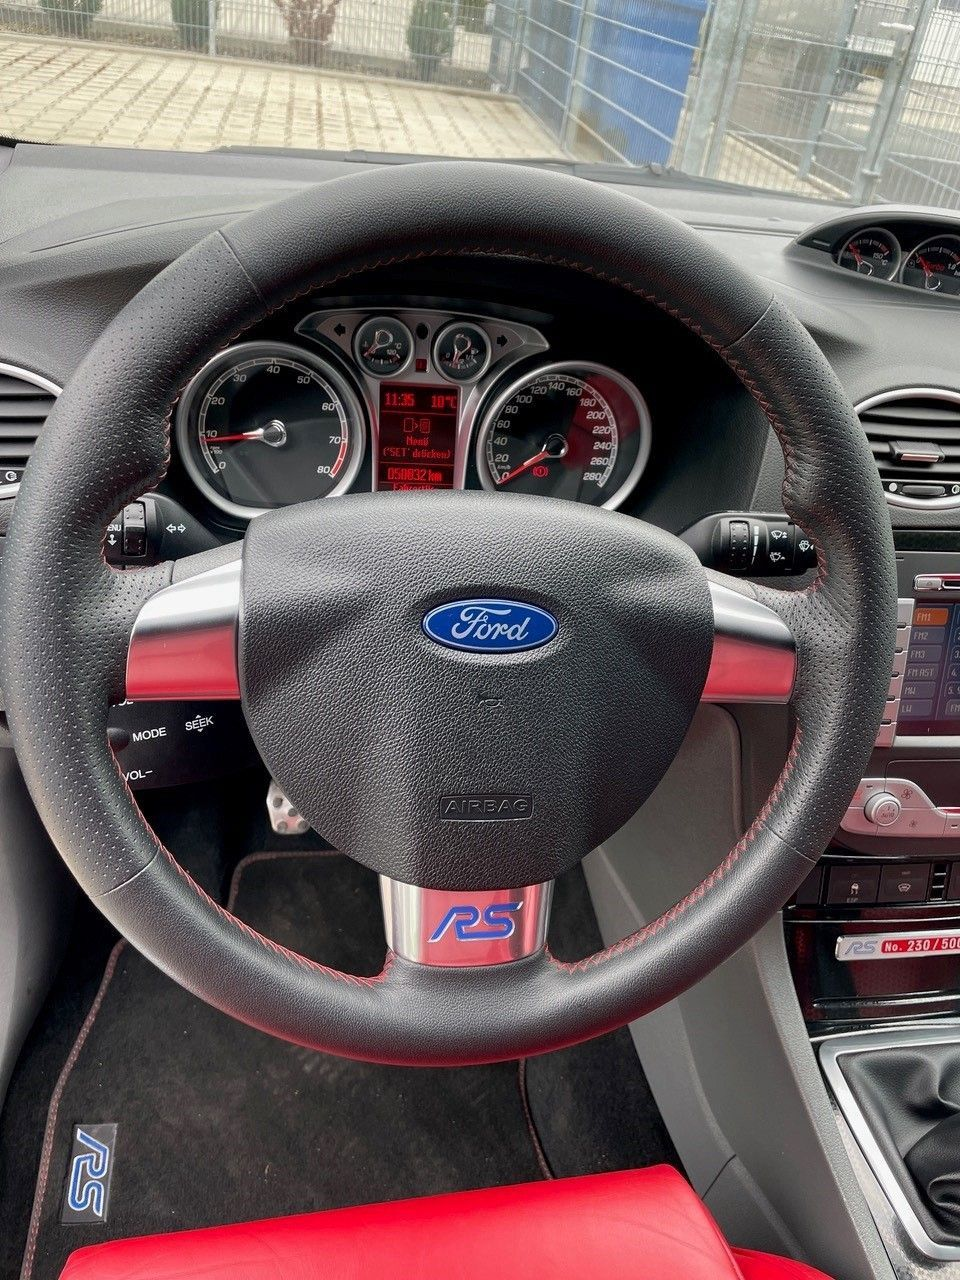 2010_Ford_Focus_RS500_sale-0060